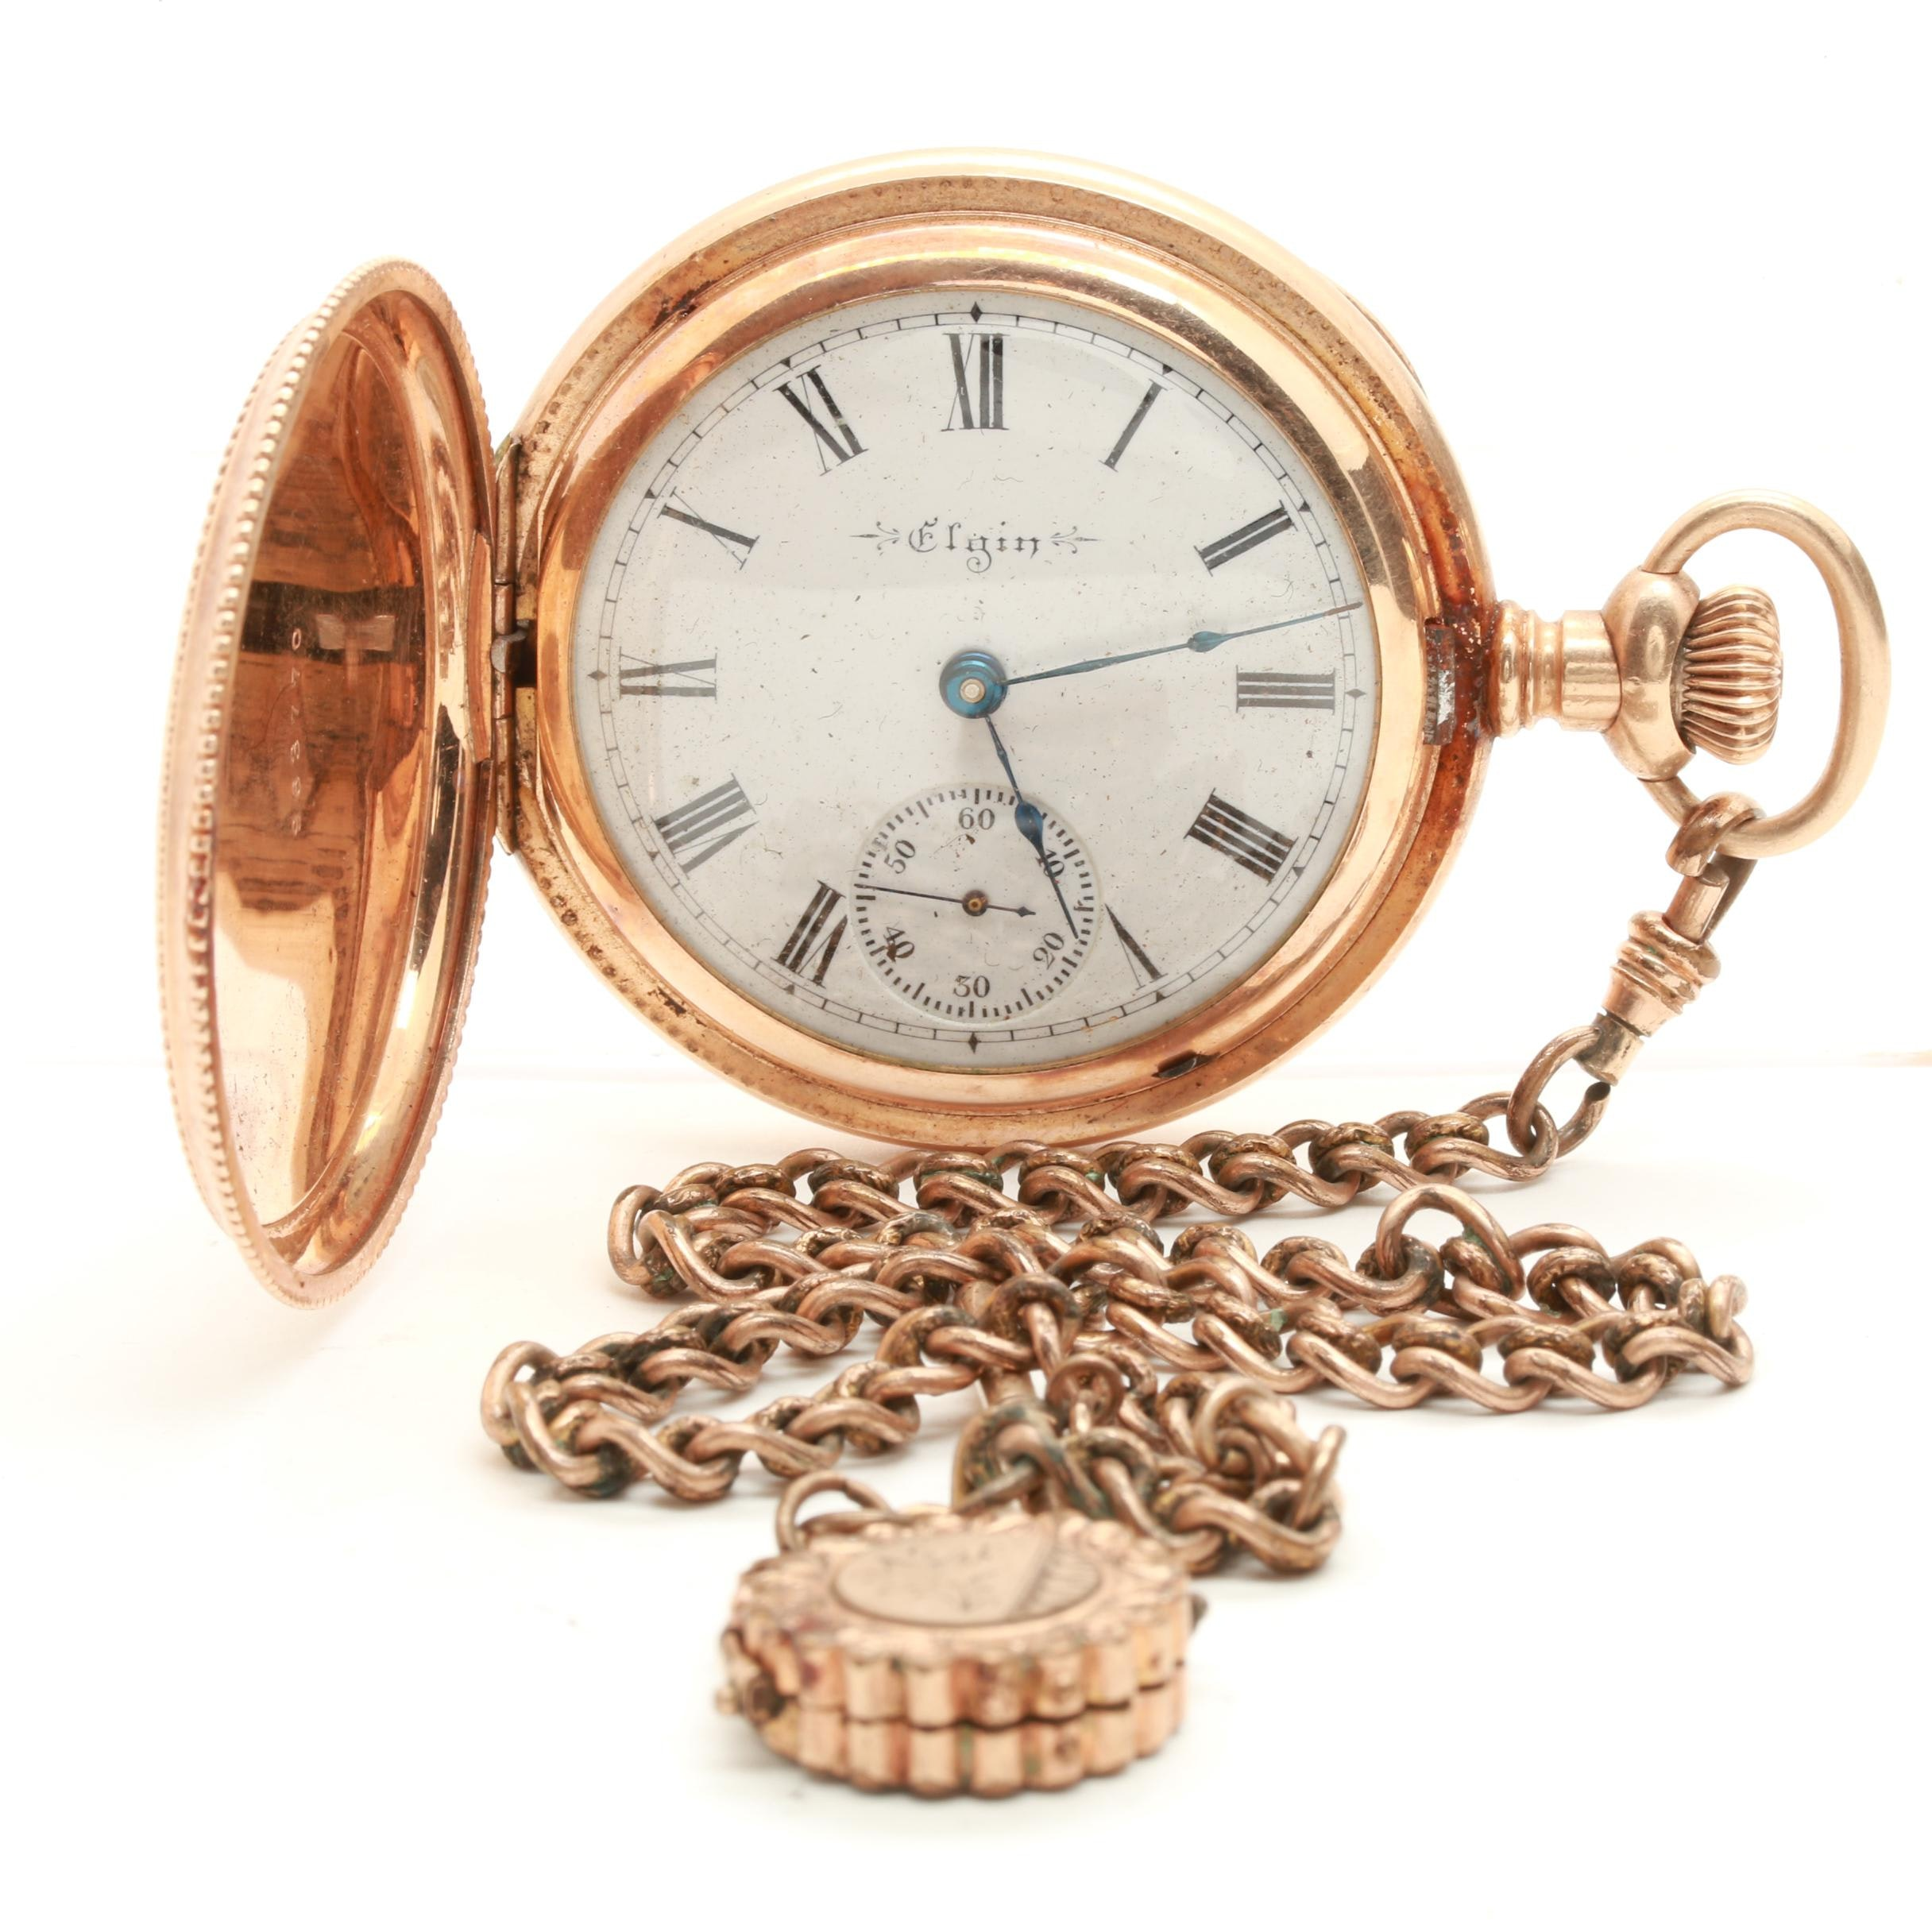 Elgin Gold Filled Hunting Case Pocket Watch with Gold Filled Fob